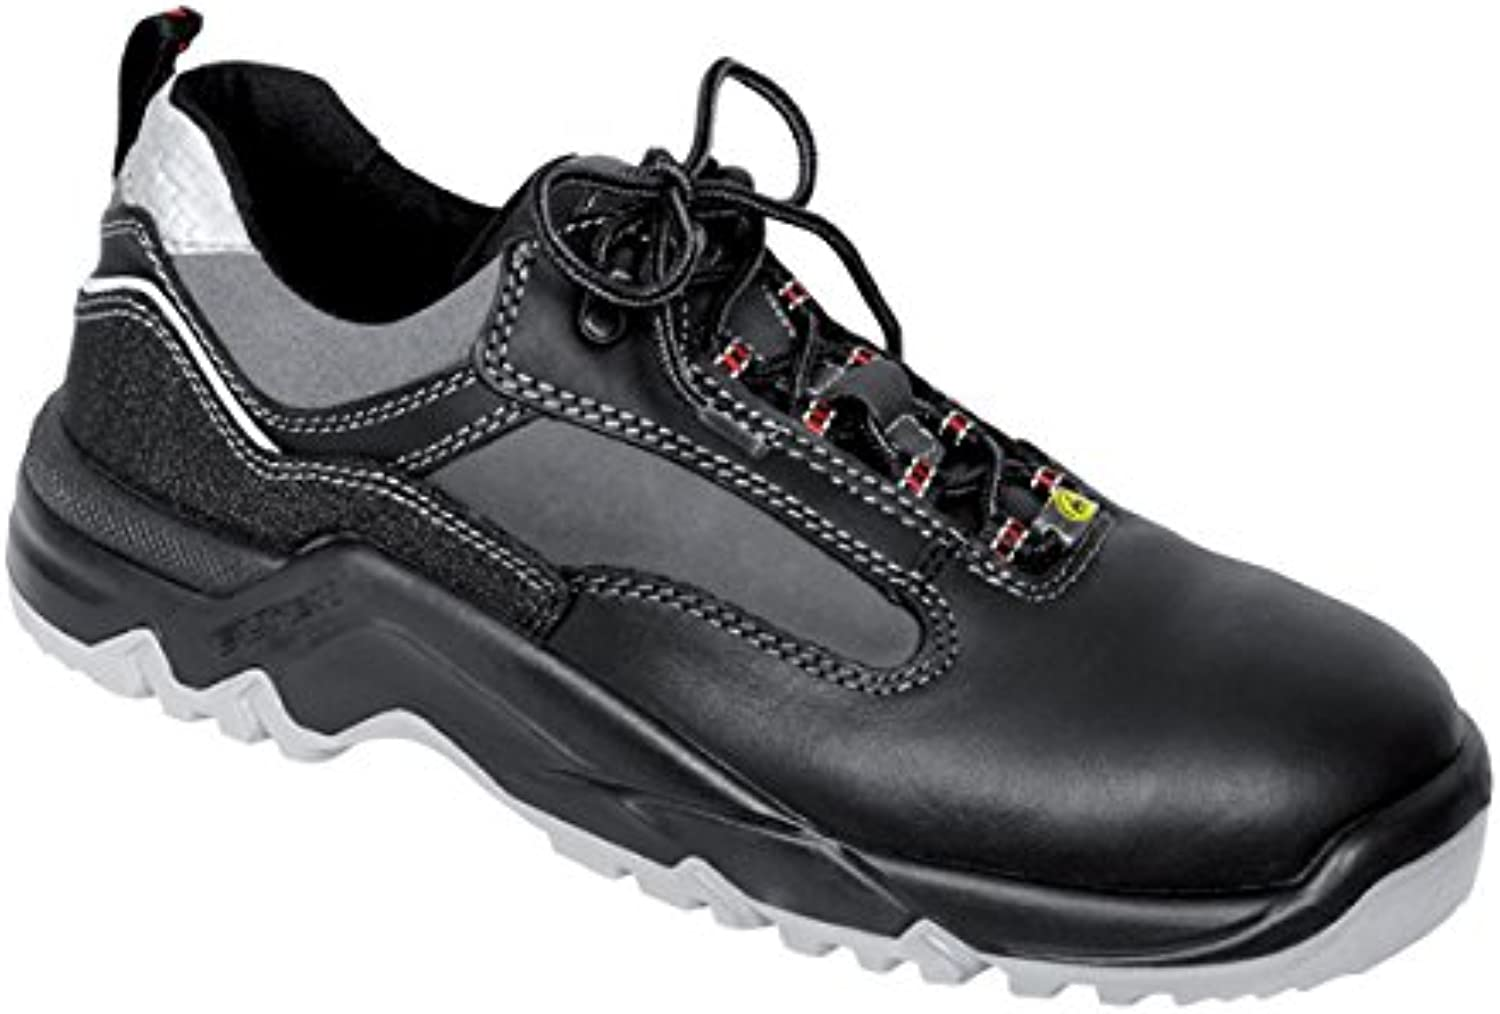 Elten 2726251-51 Safety shoes Len  ESD S3, Size 14.5, Black Grey